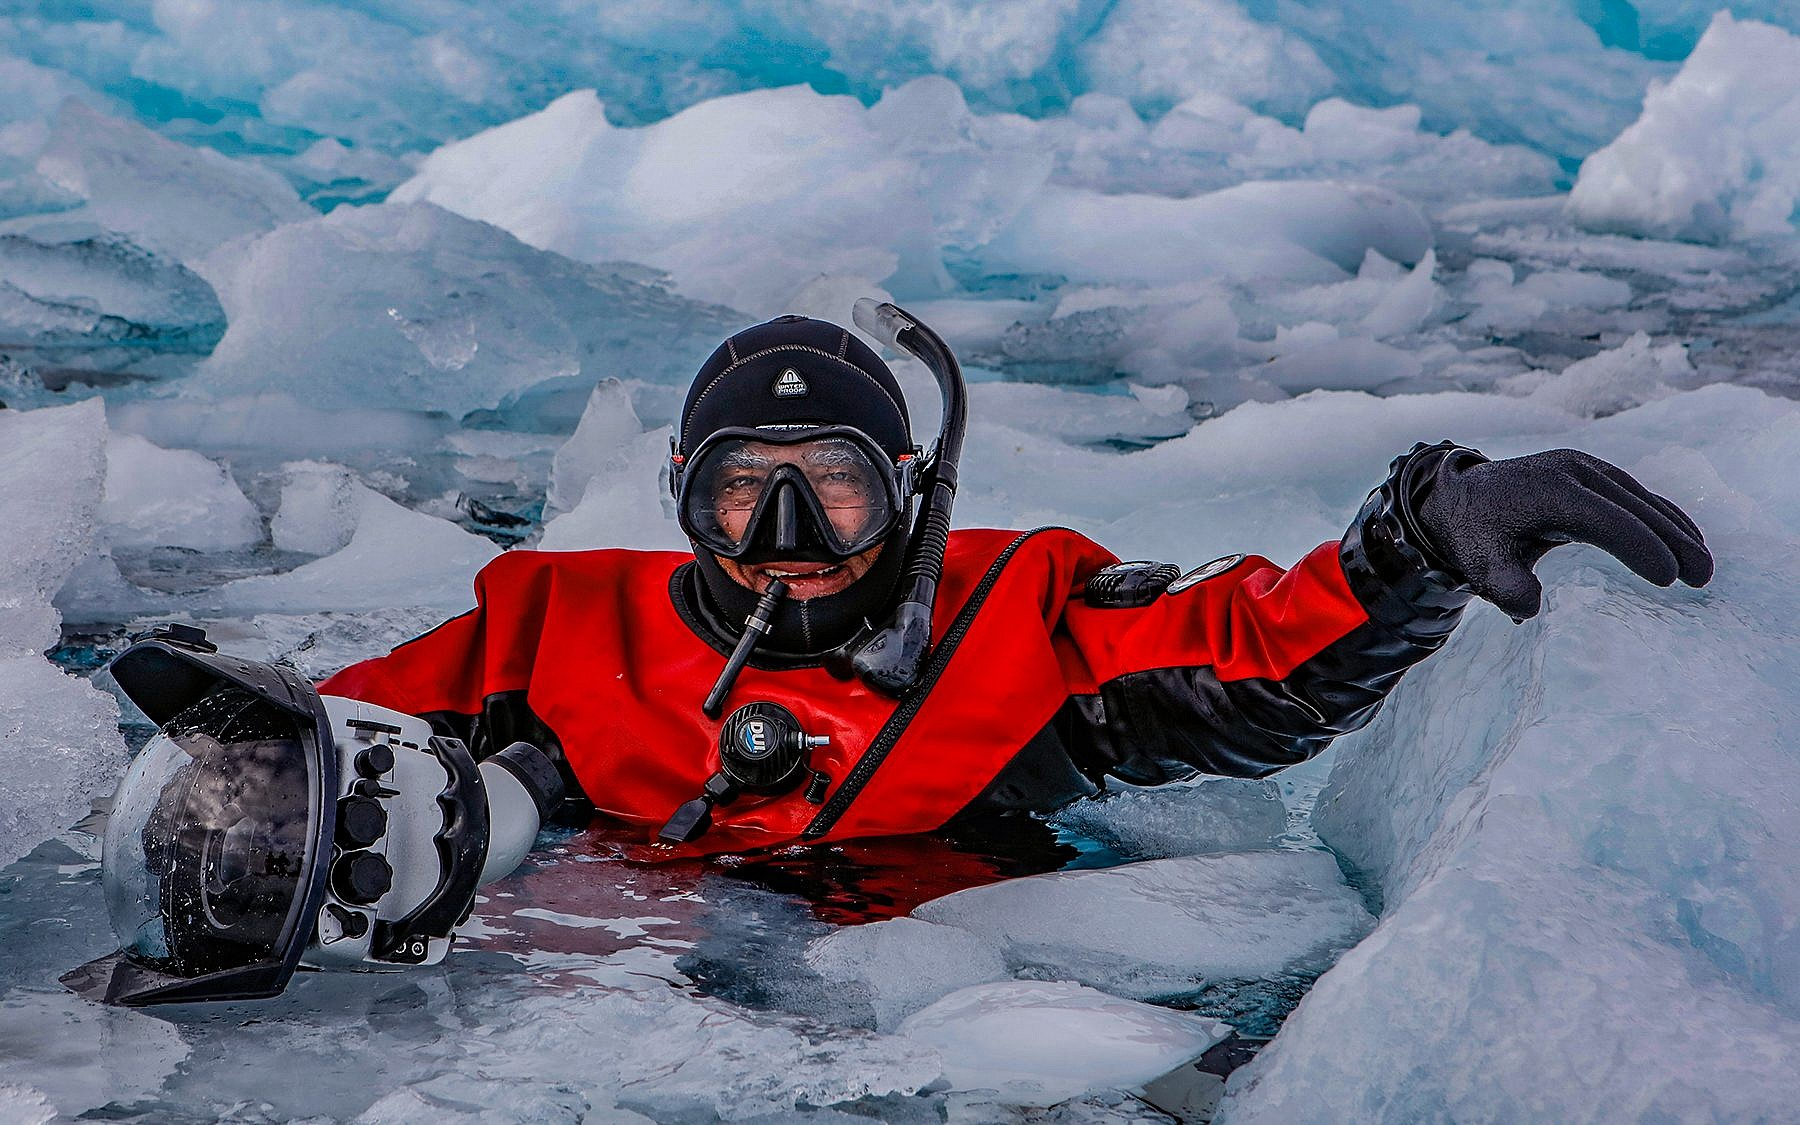 Wildlife photographer Amos Nachoum amid the ice. (Keding Zuh)